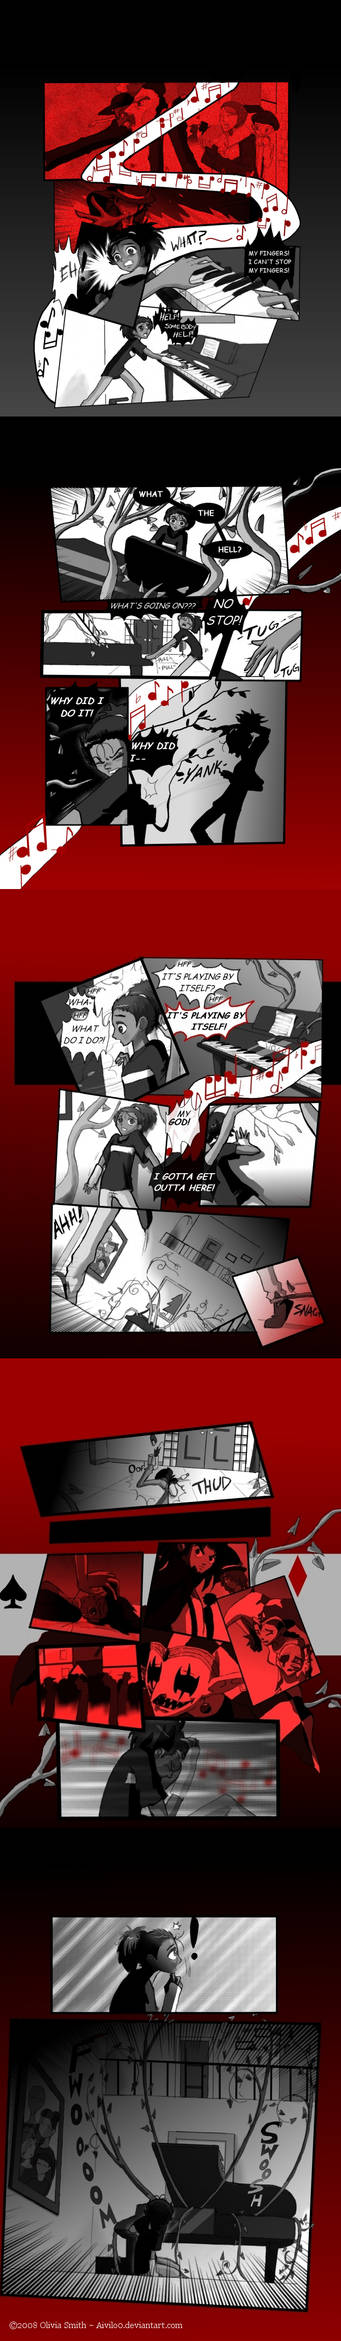 Animosity Sonata Page 40-44